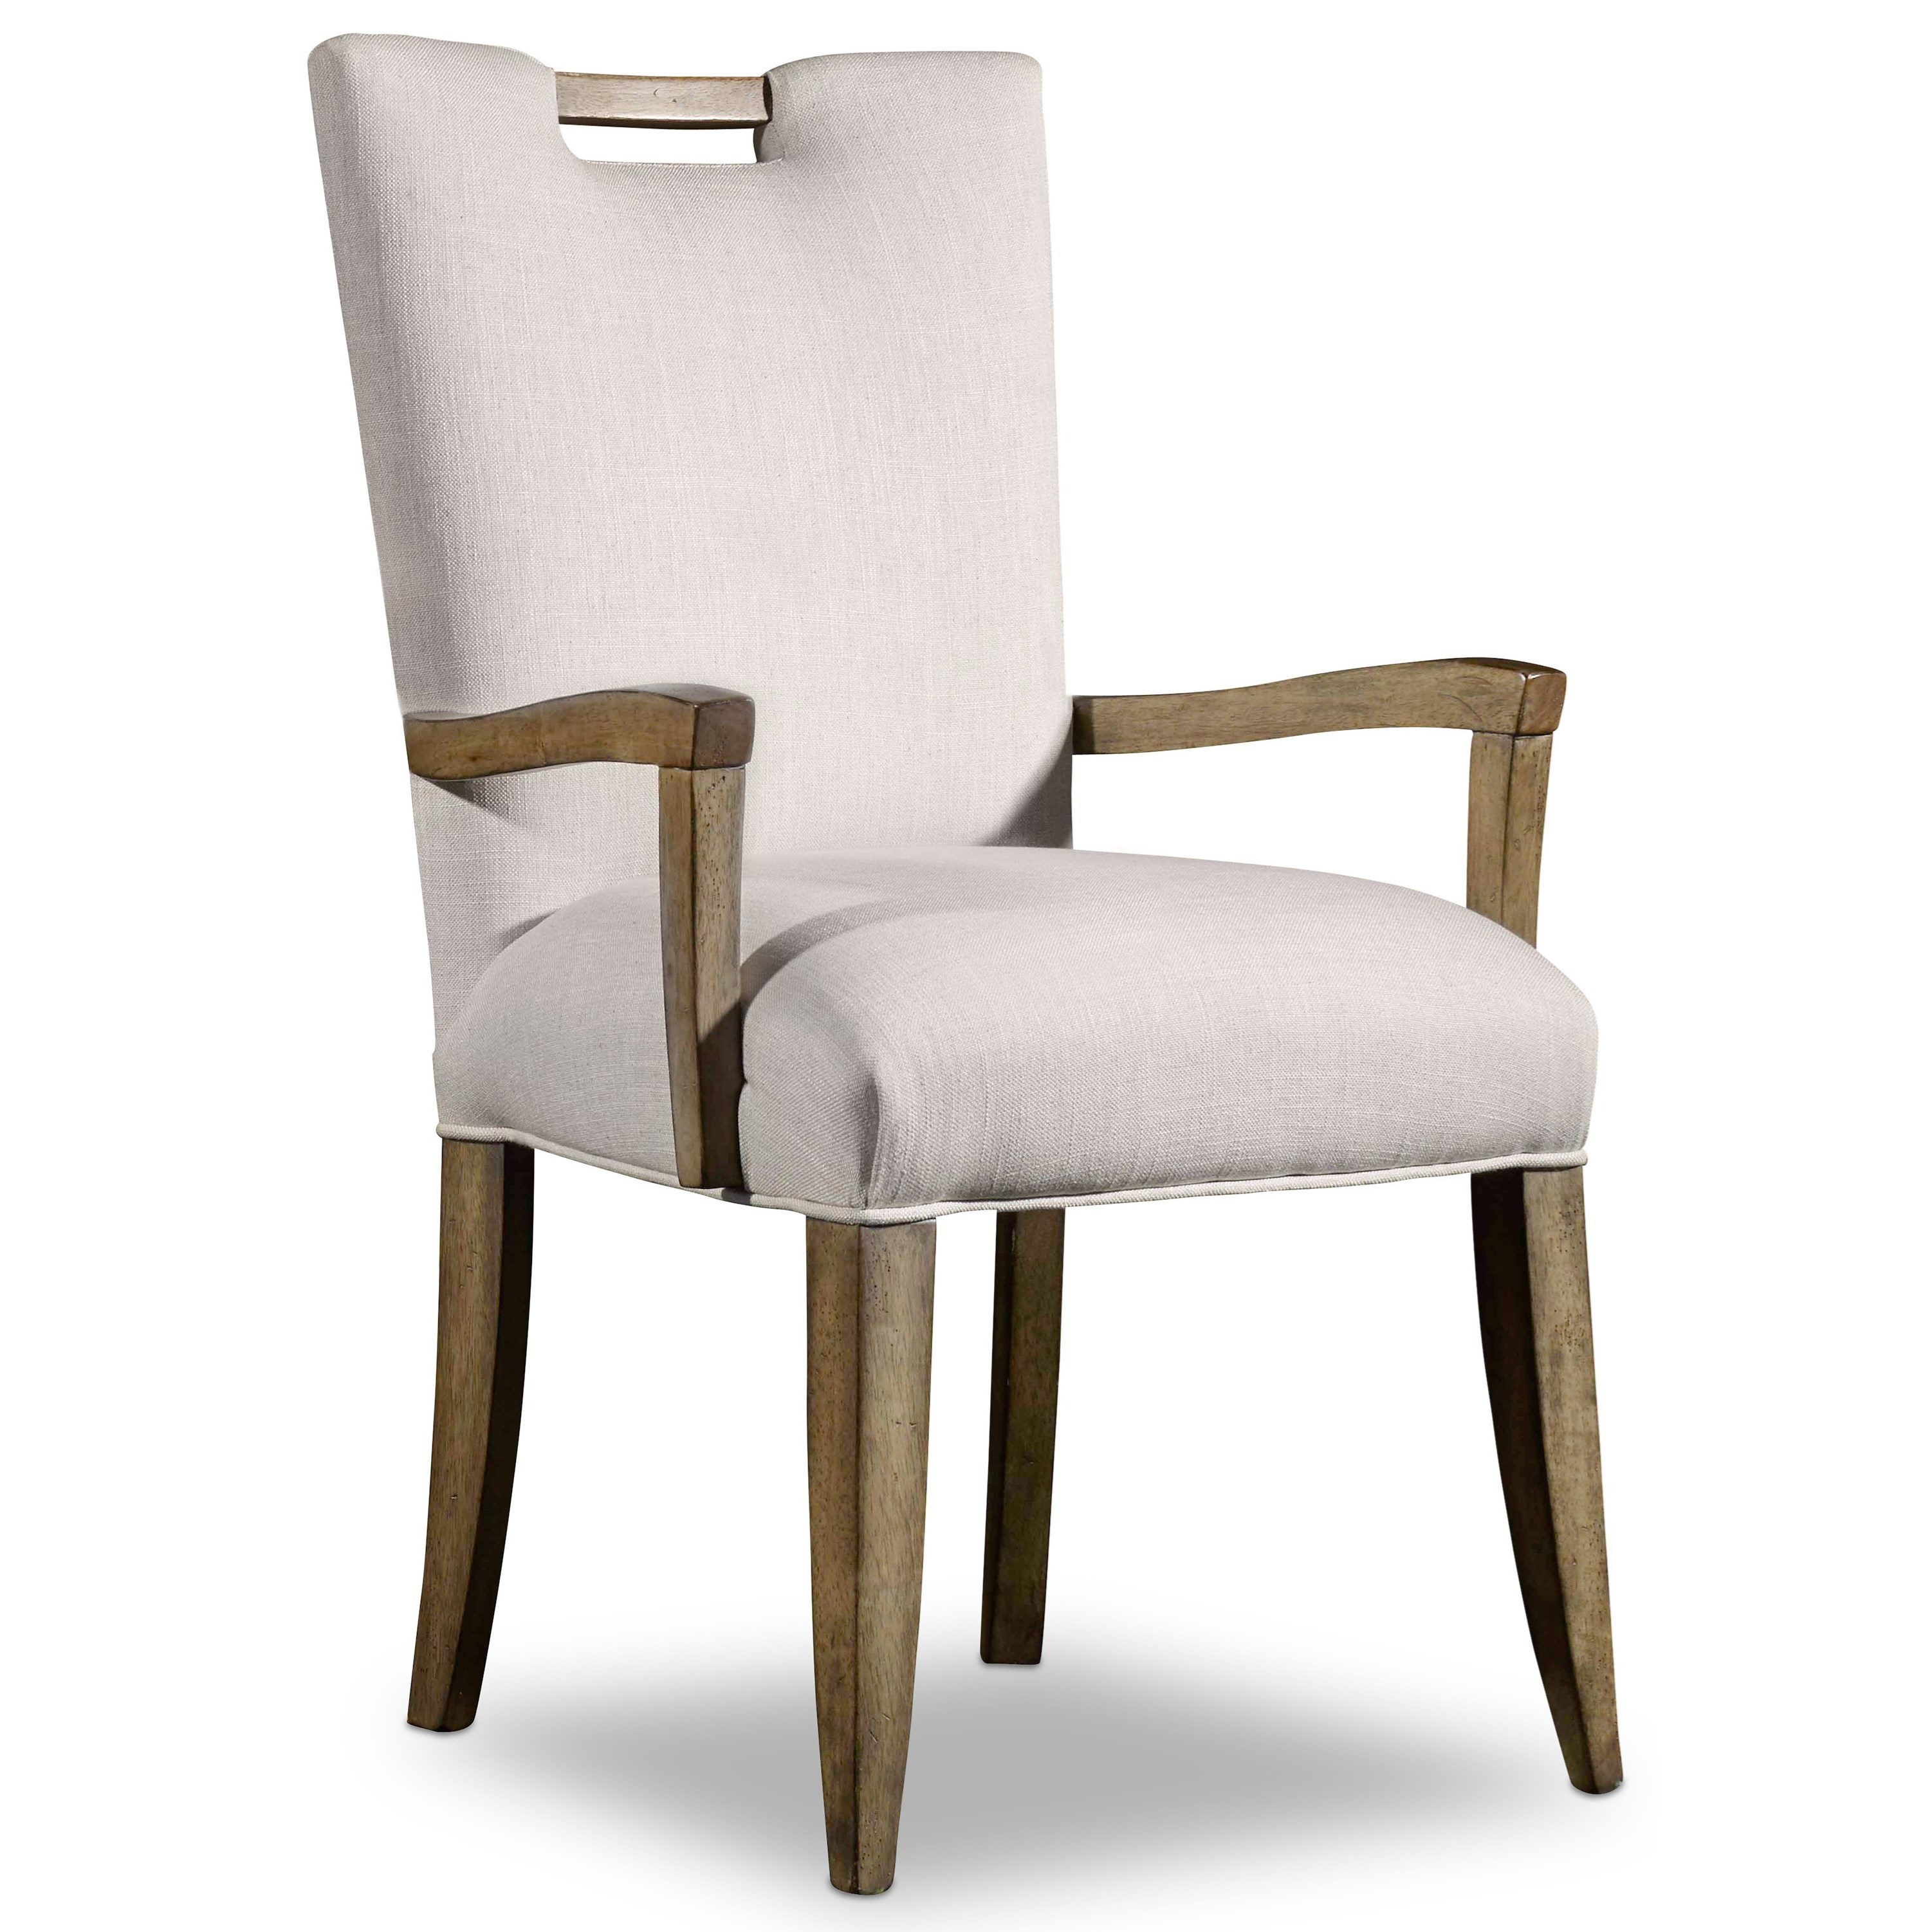 Hooker Furniture Mélange Barrett Upholstered Arm Chair - Item Number: 638-75134